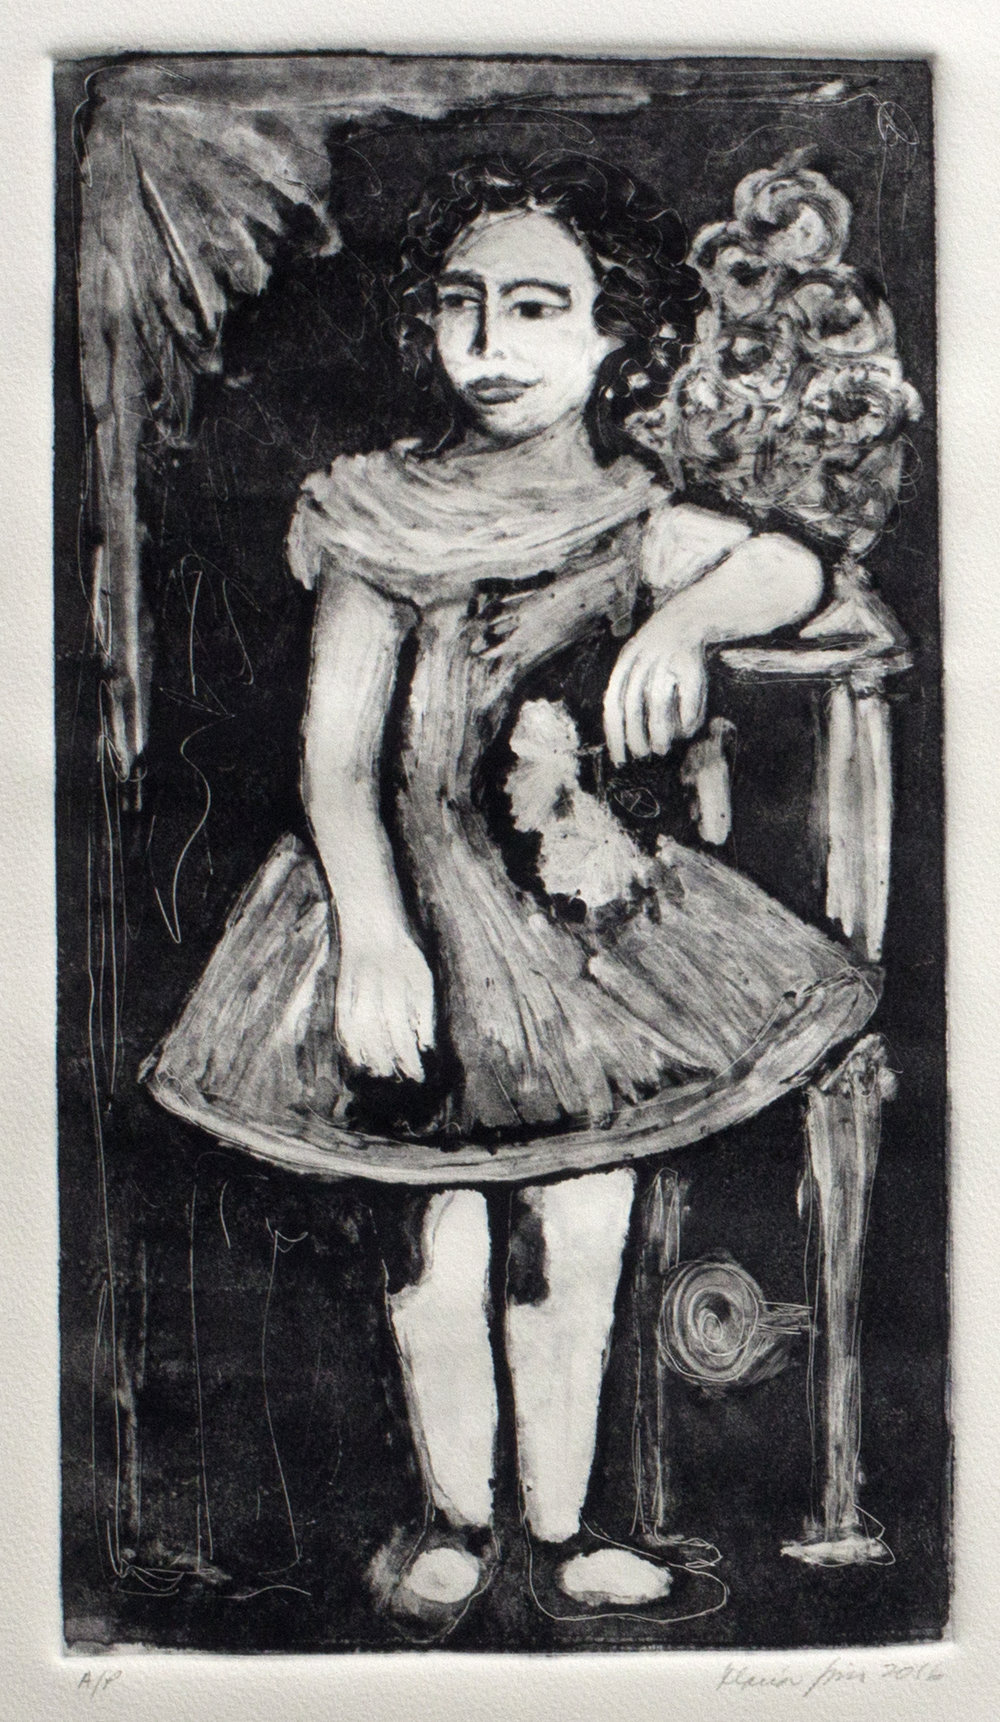 Tia Posing with a Flower (Ghost Print), 2016